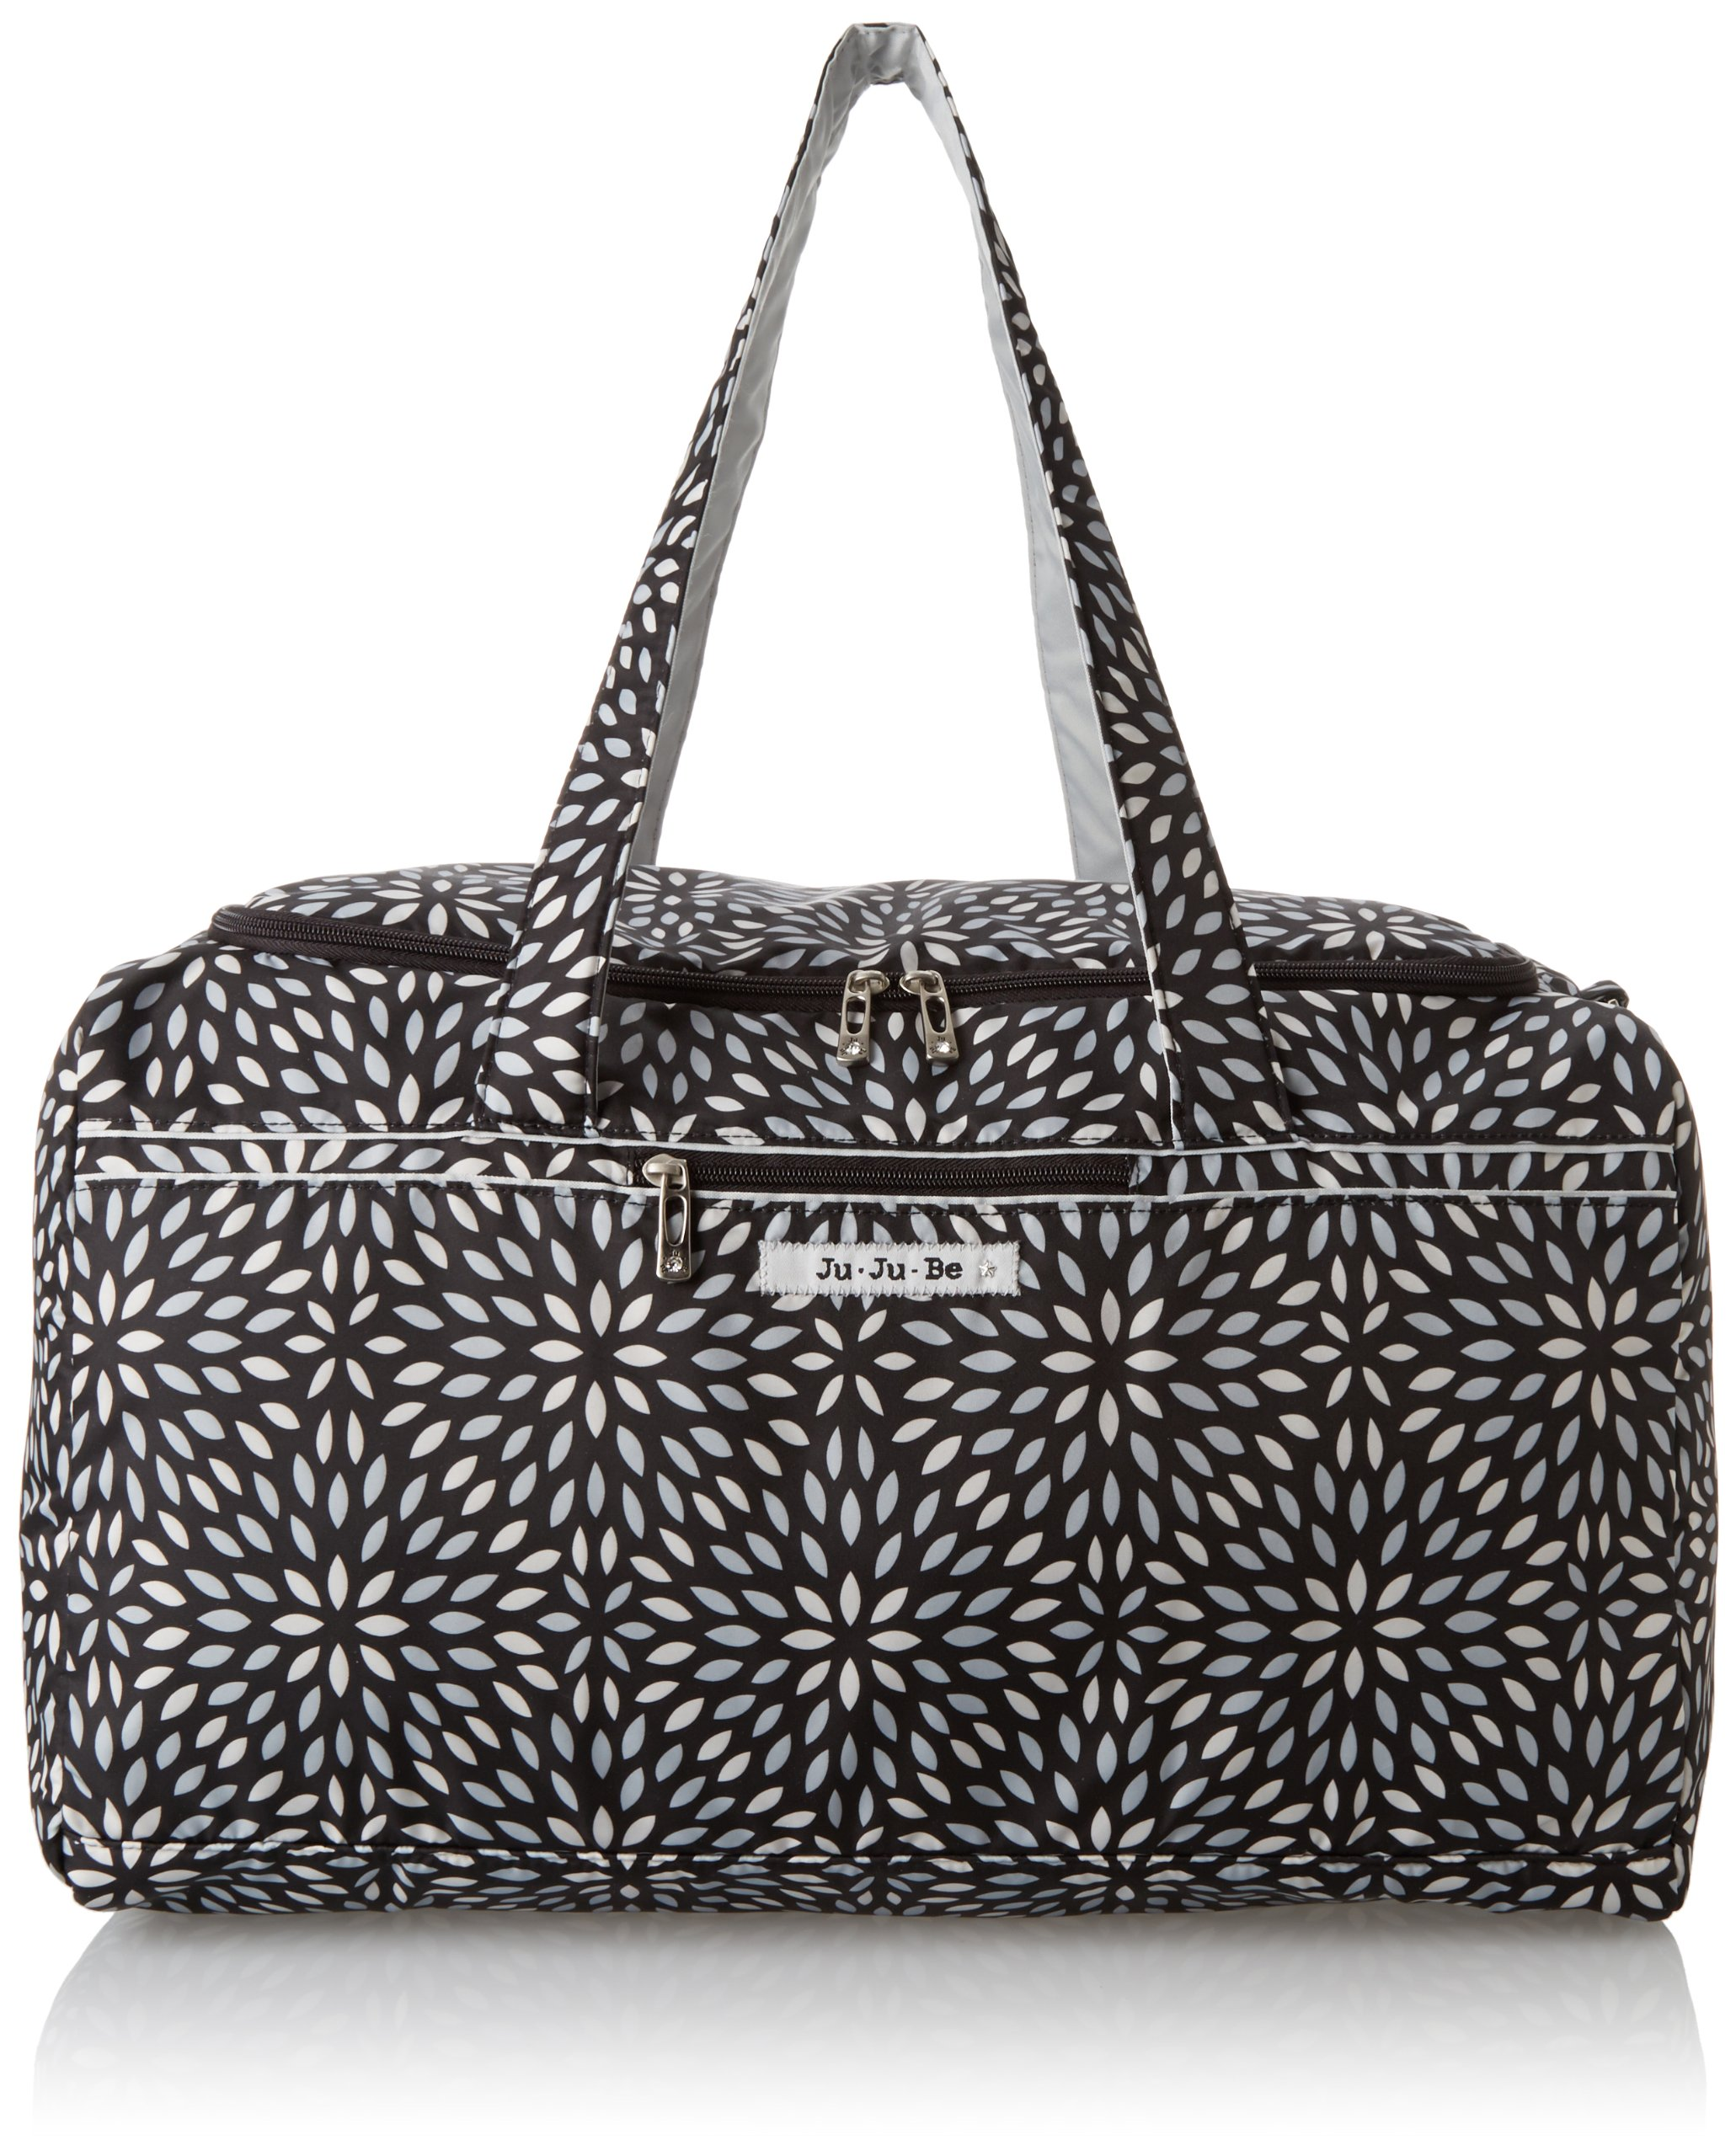 Ju-Ju-Be Super Star Large Travel Duffel Bag, Platinum Petals